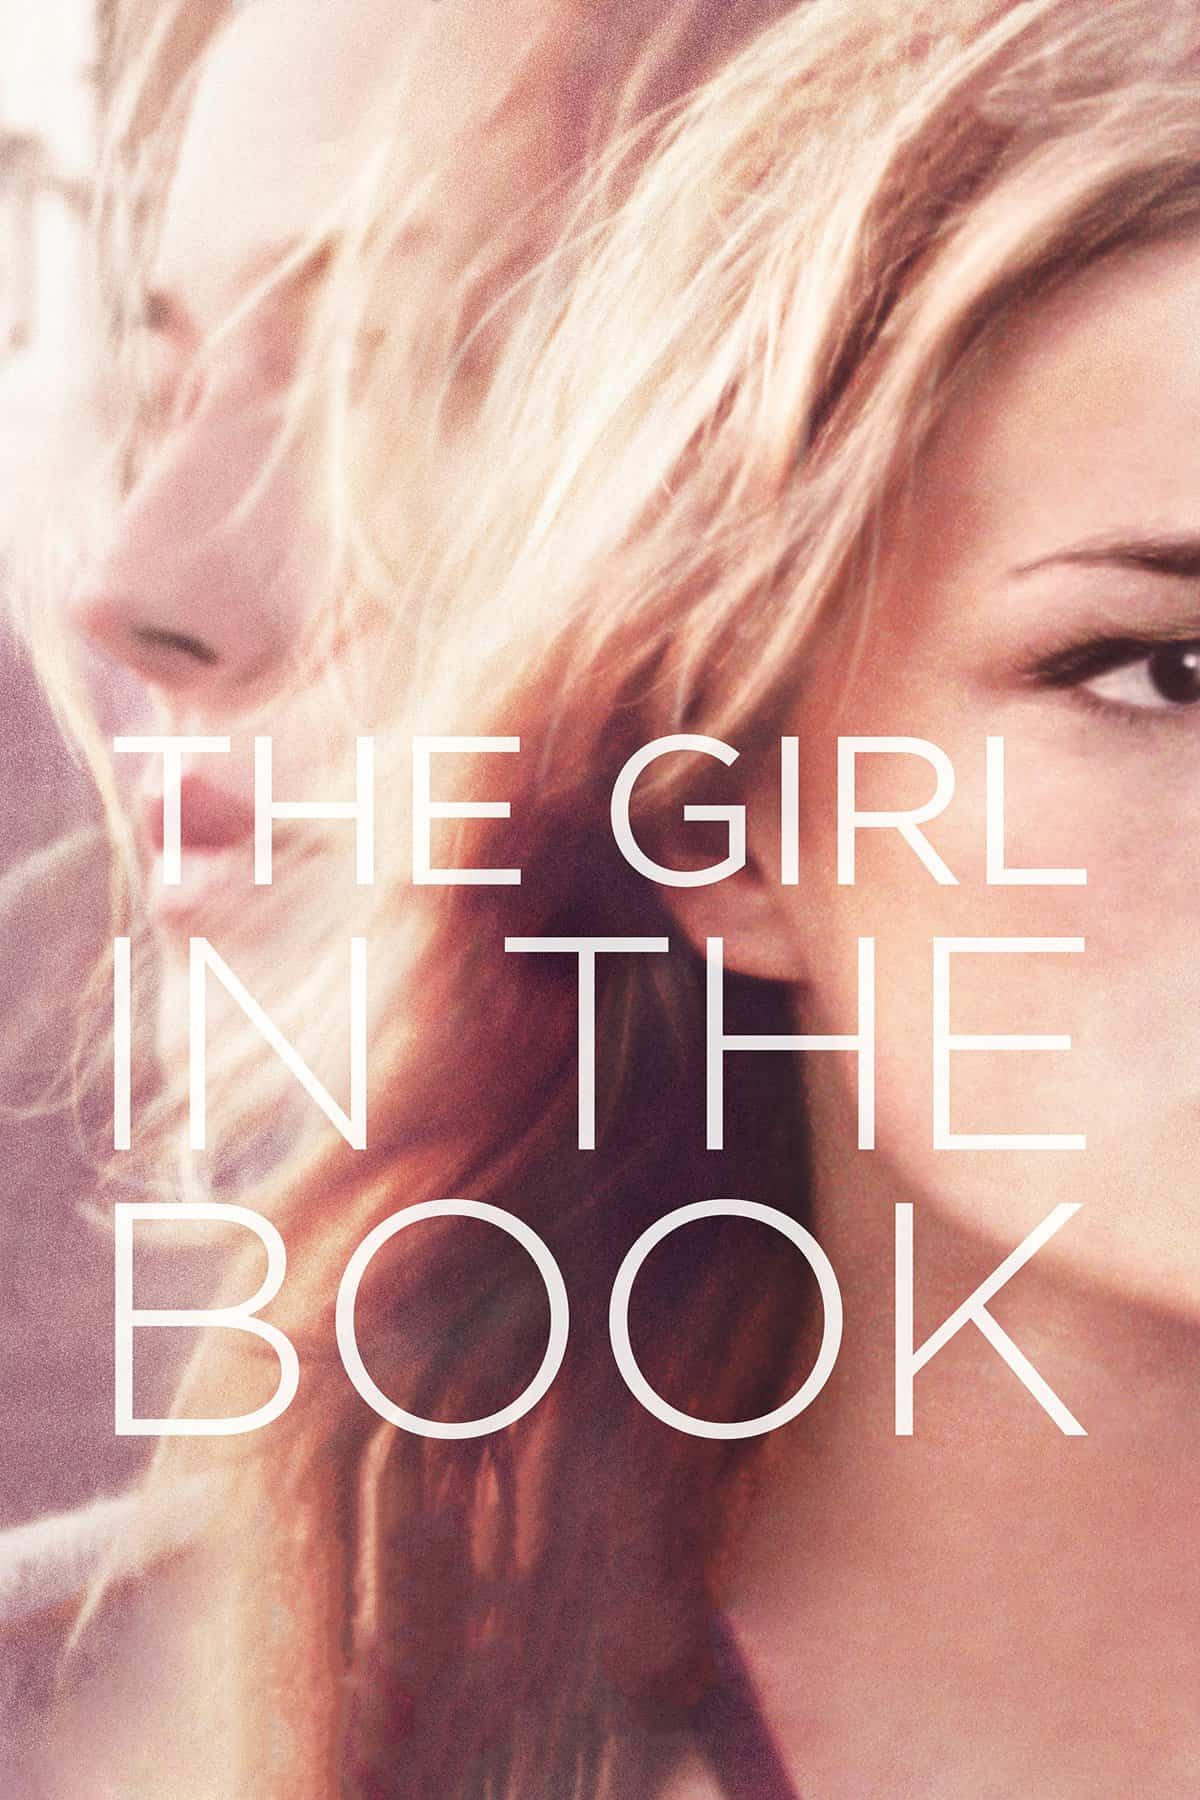 The Girl in the Book, 2015